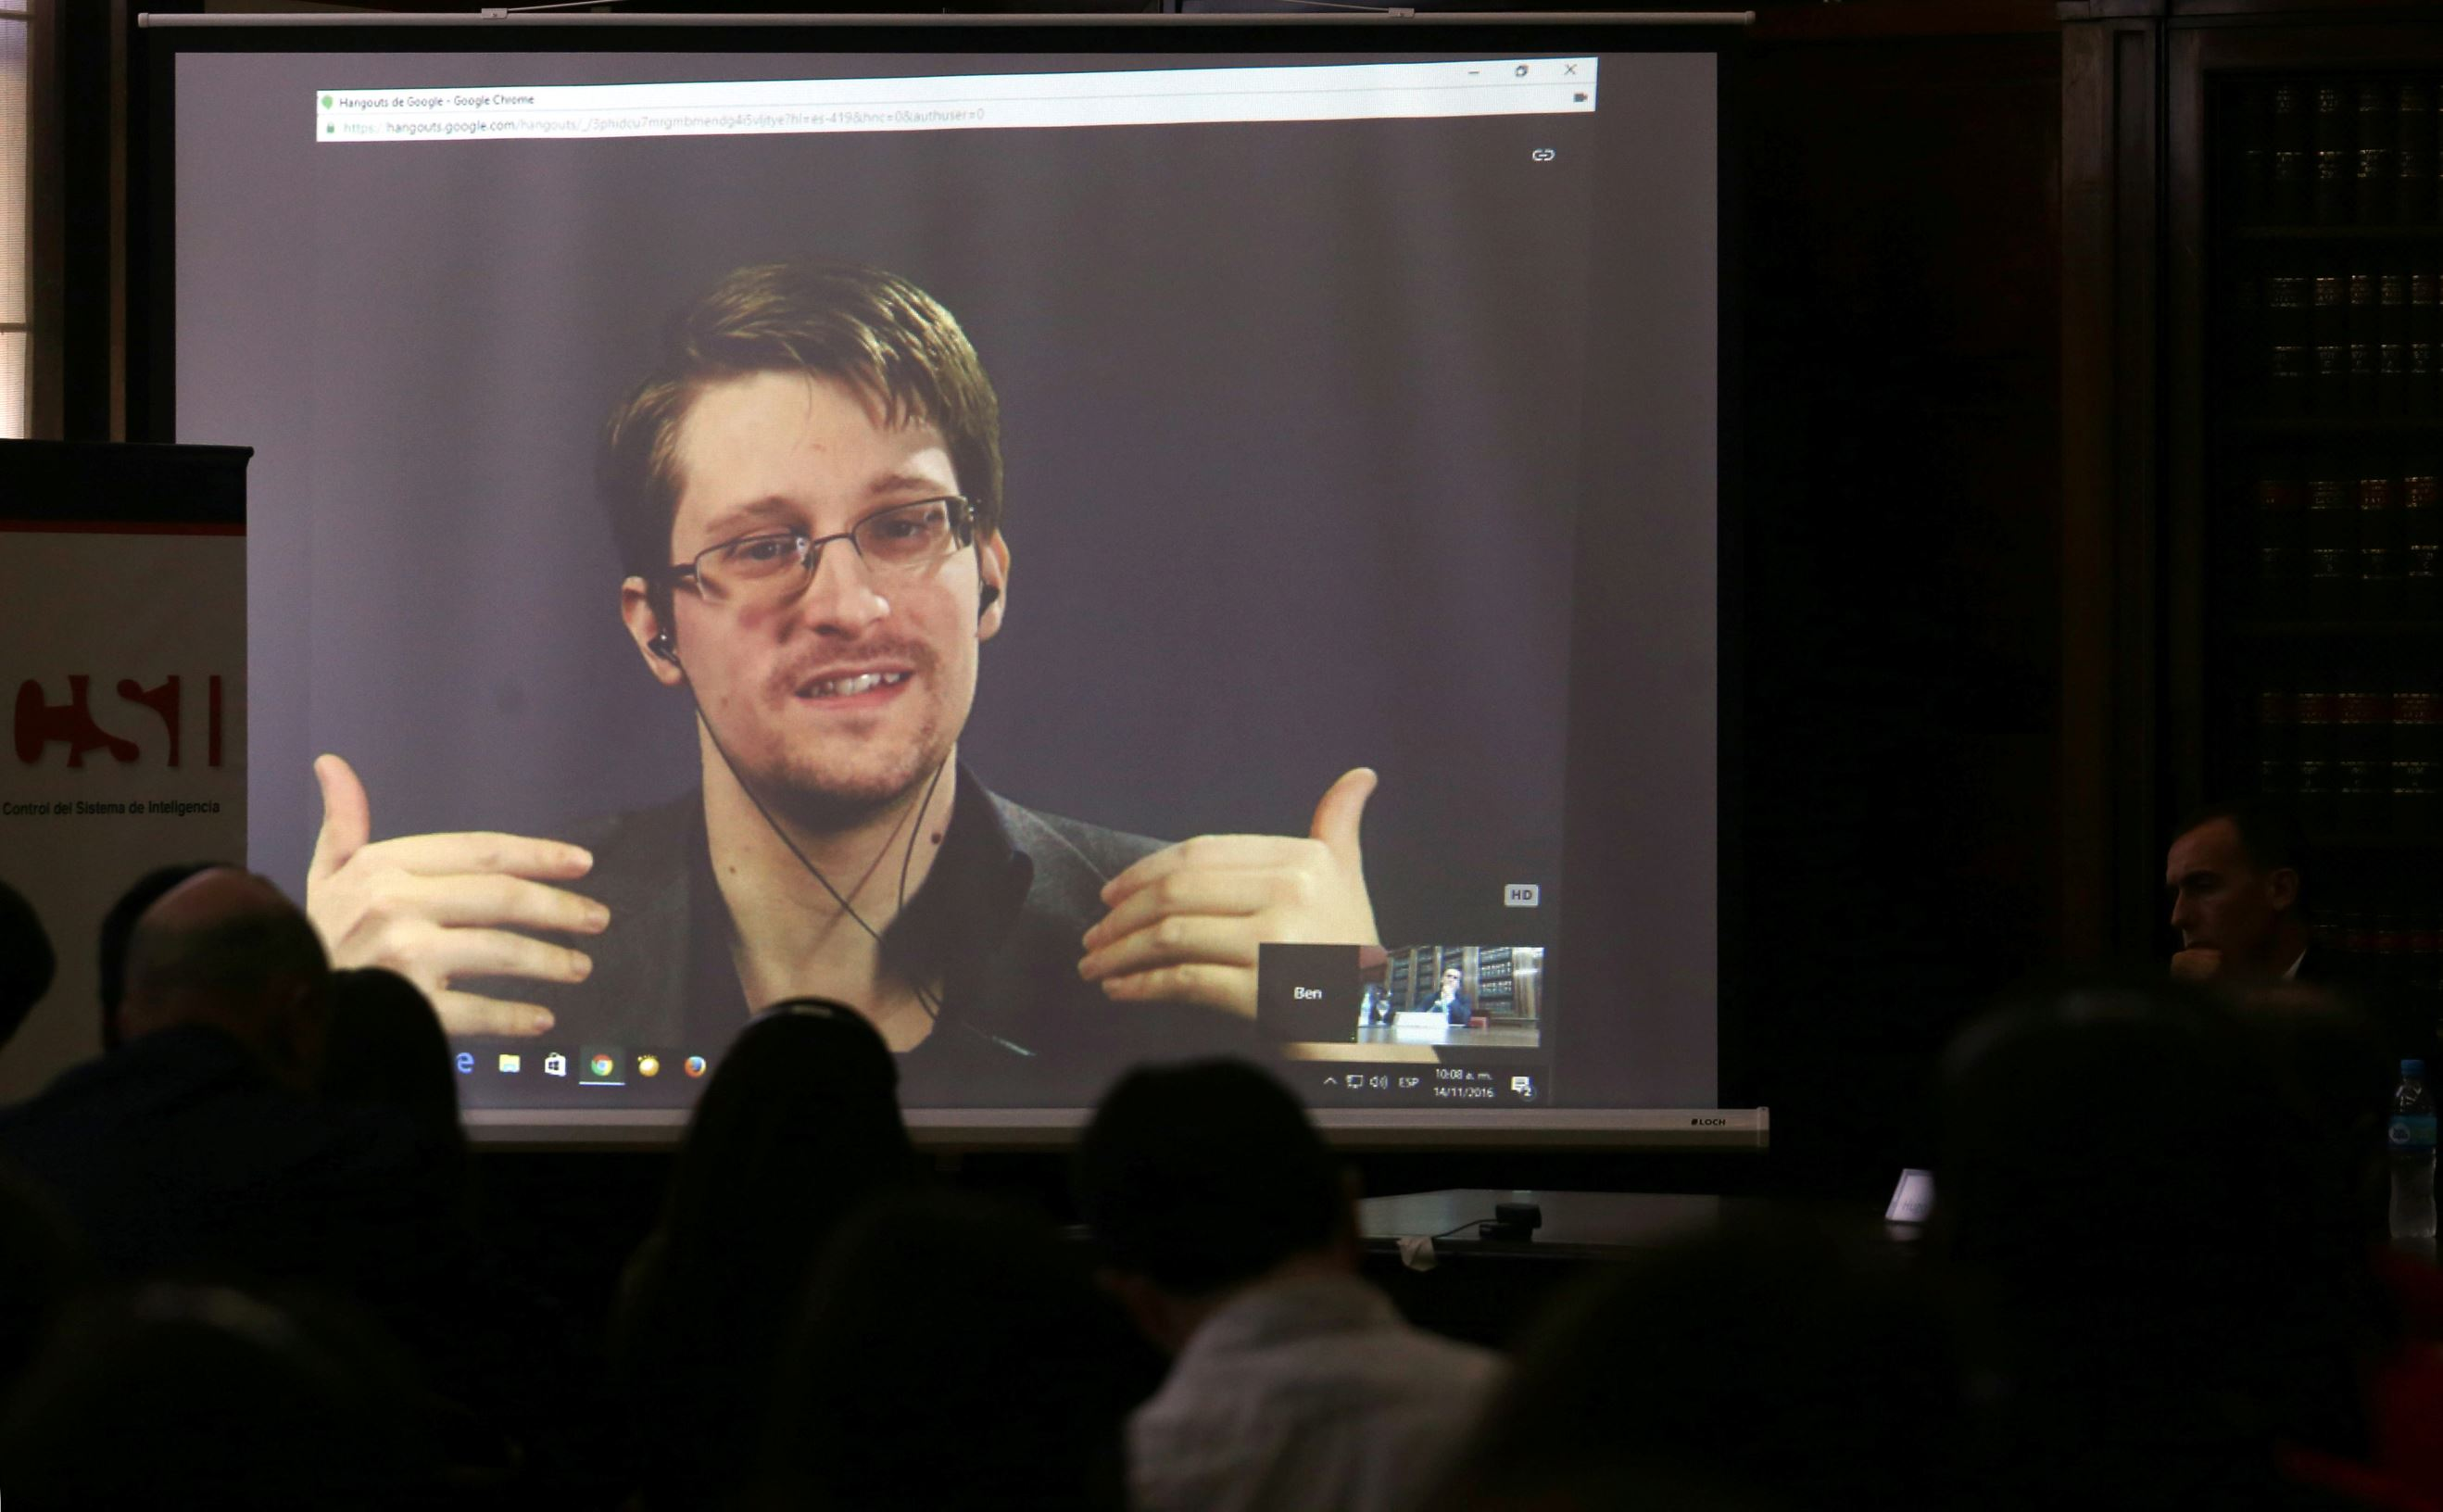 Edward Snowden speaks via video link during a conference at University of Buenos Aires Law School, Argentina, November 14, 2016.